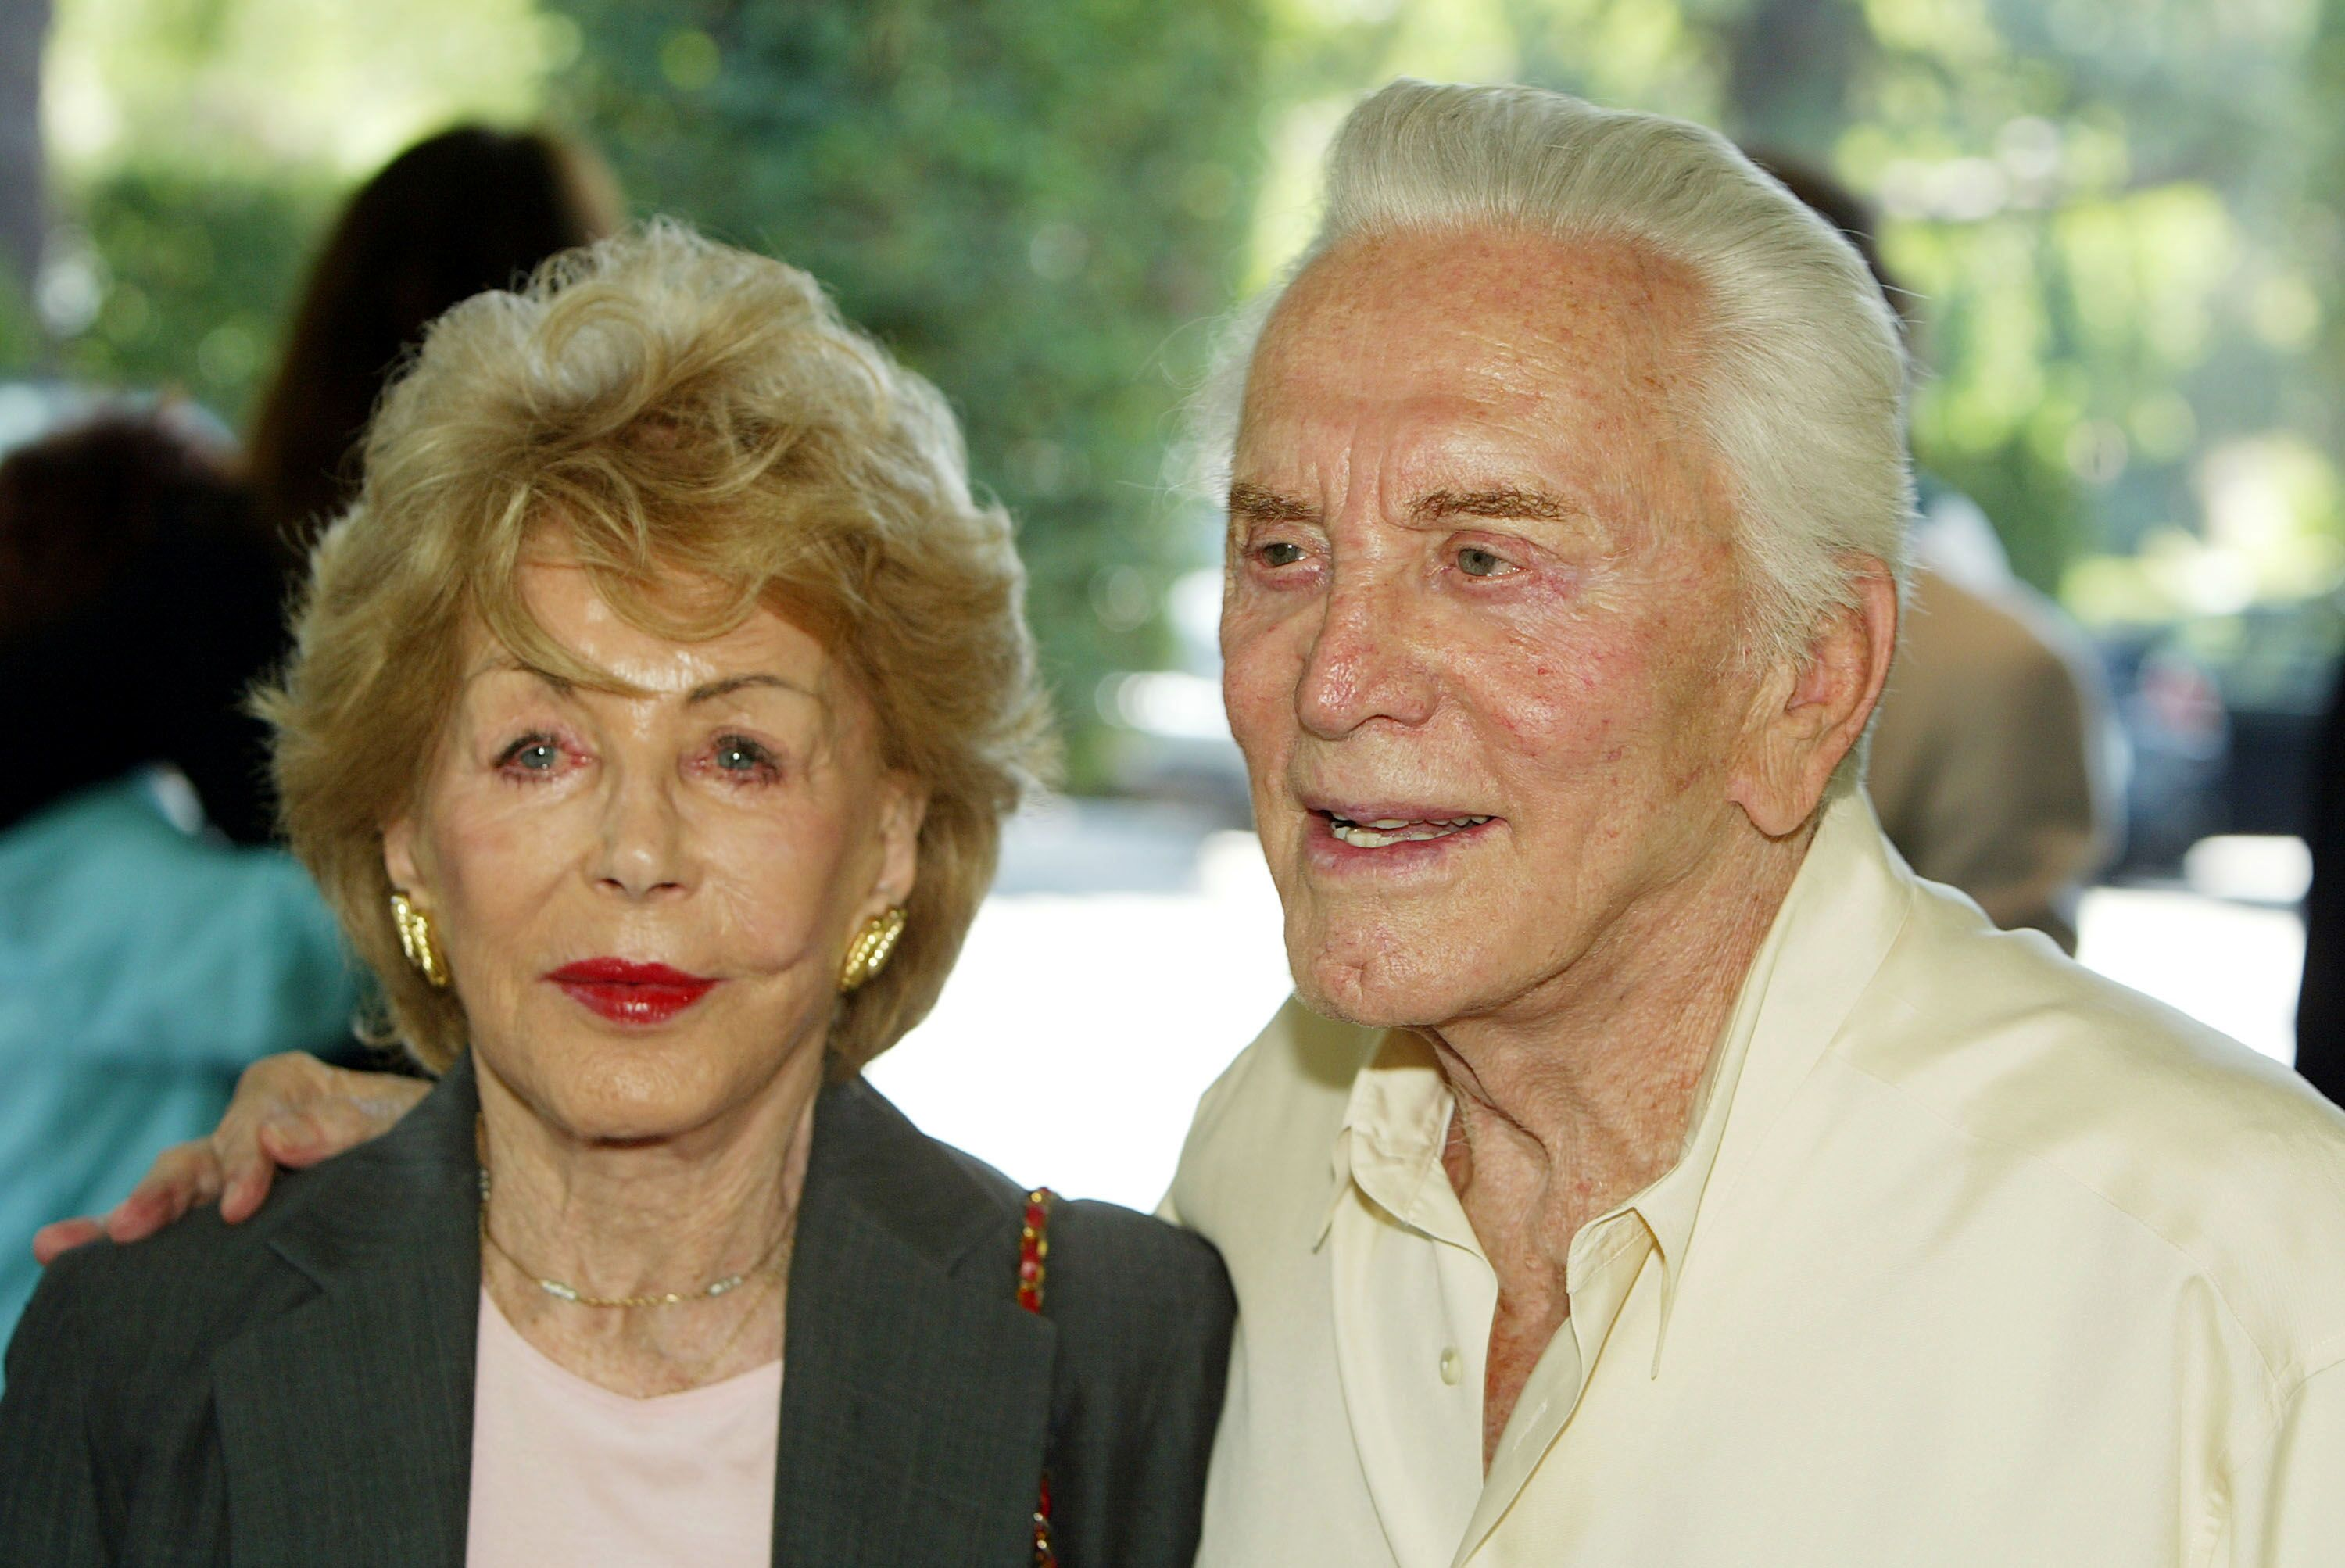 Kirk Douglas and his wife Anne arrive at the annual Hollywood Foreign Press Association installation luncheon. | Source: Getty Images